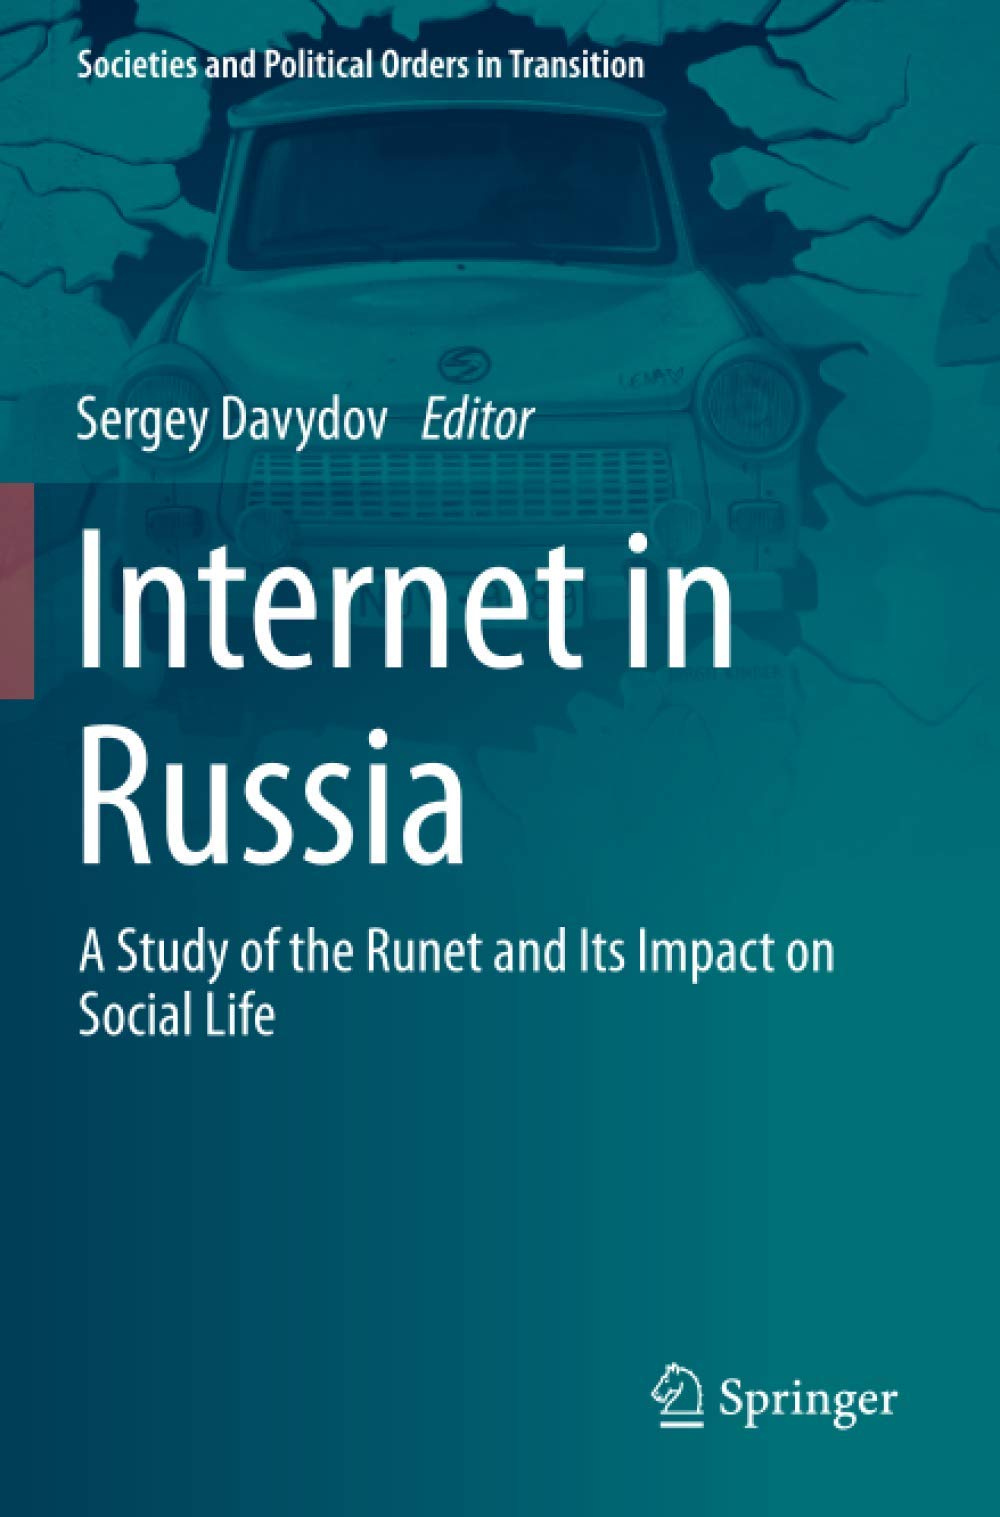 Amazon   Internet in Russia: A Study of the Runet and Its Impact on Social  Life (Societies and Political Orders in Transition)   Davydov, Sergey    Russian & Former Soviet Union